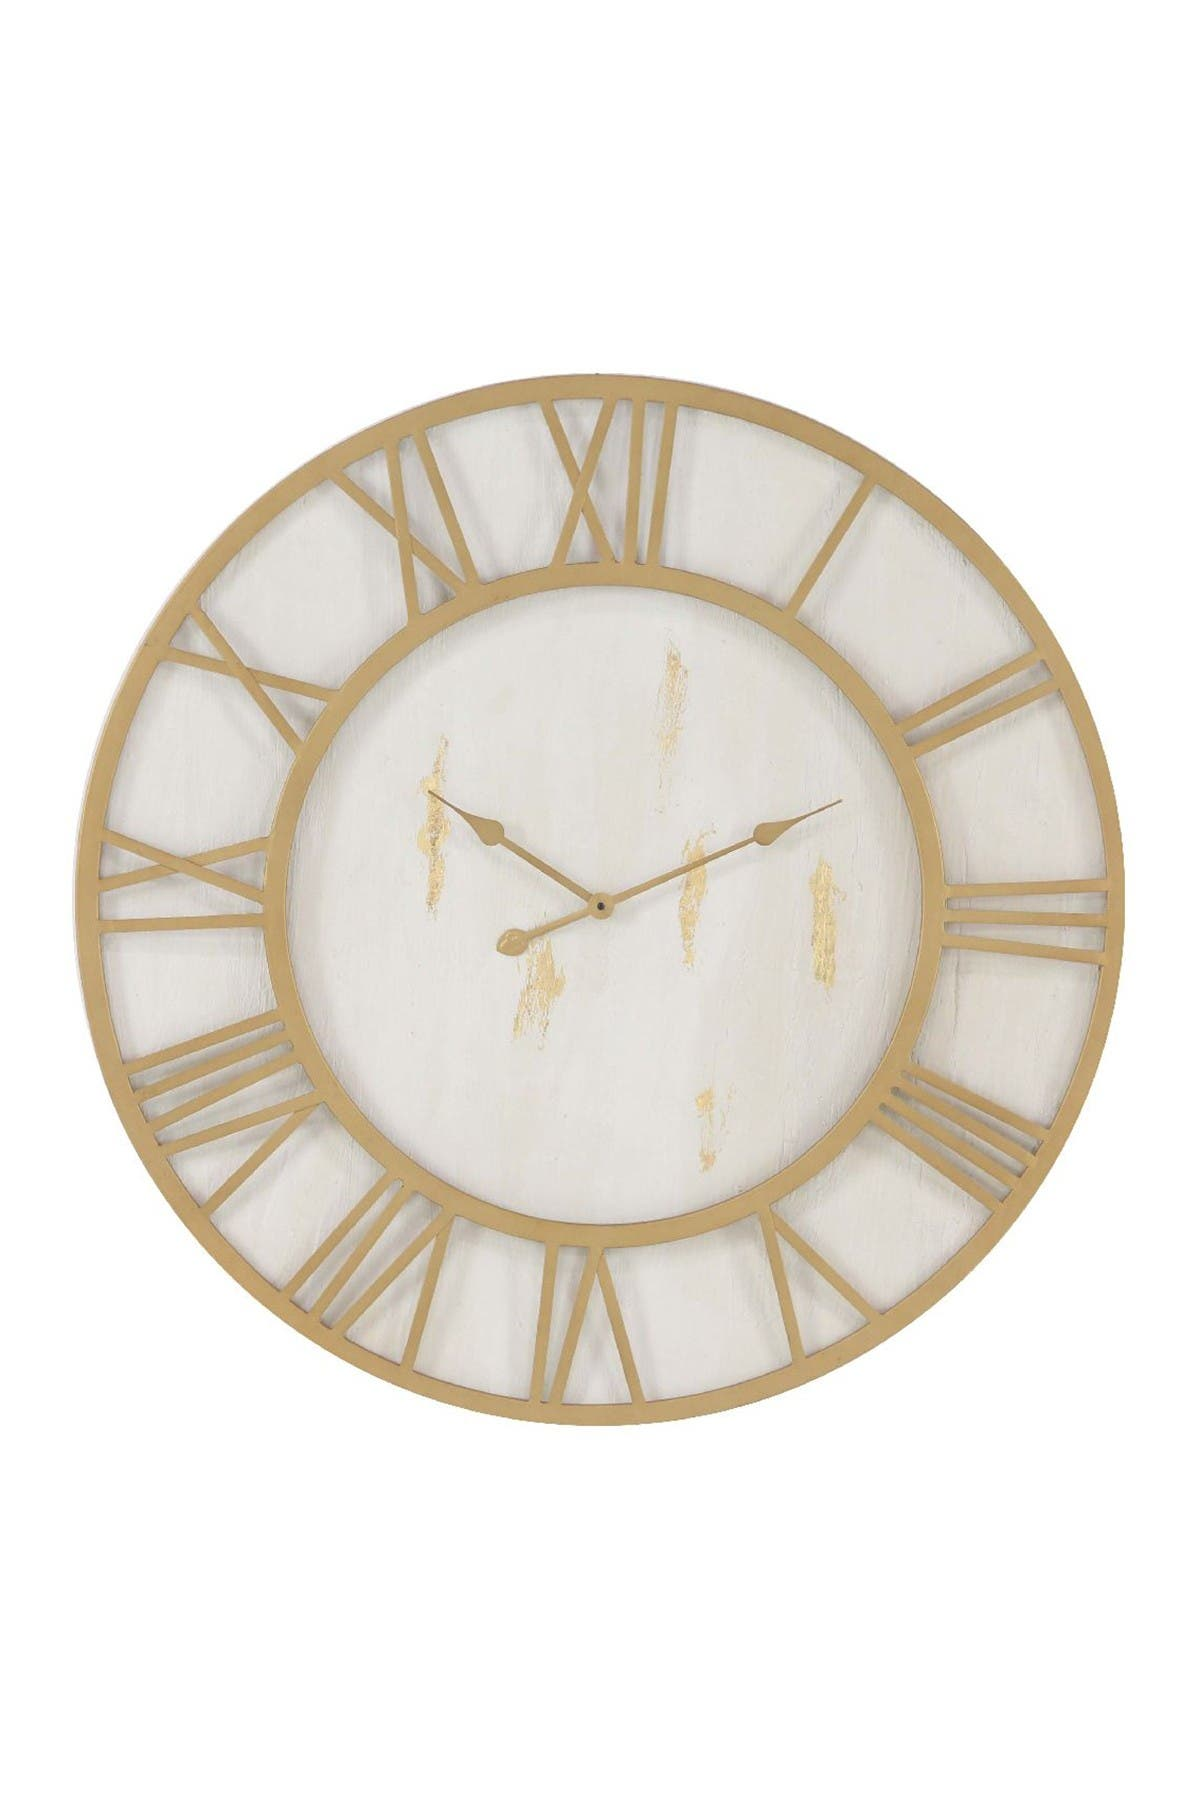 Image of Willow Row Gold/White Rustic Wall Clock